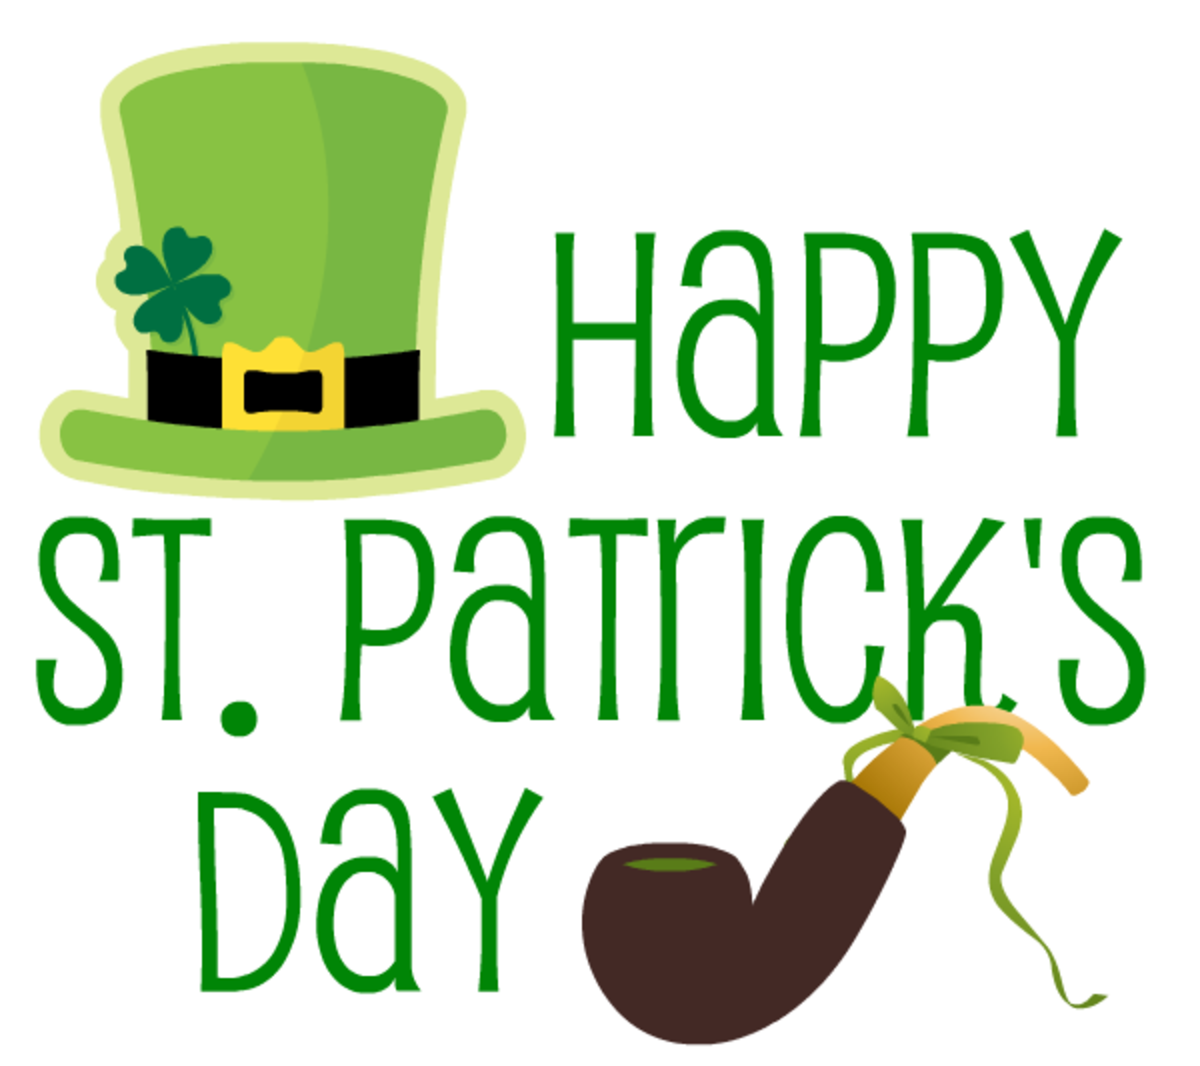 Please scroll down to see all the free St. Patrick's Day clip art